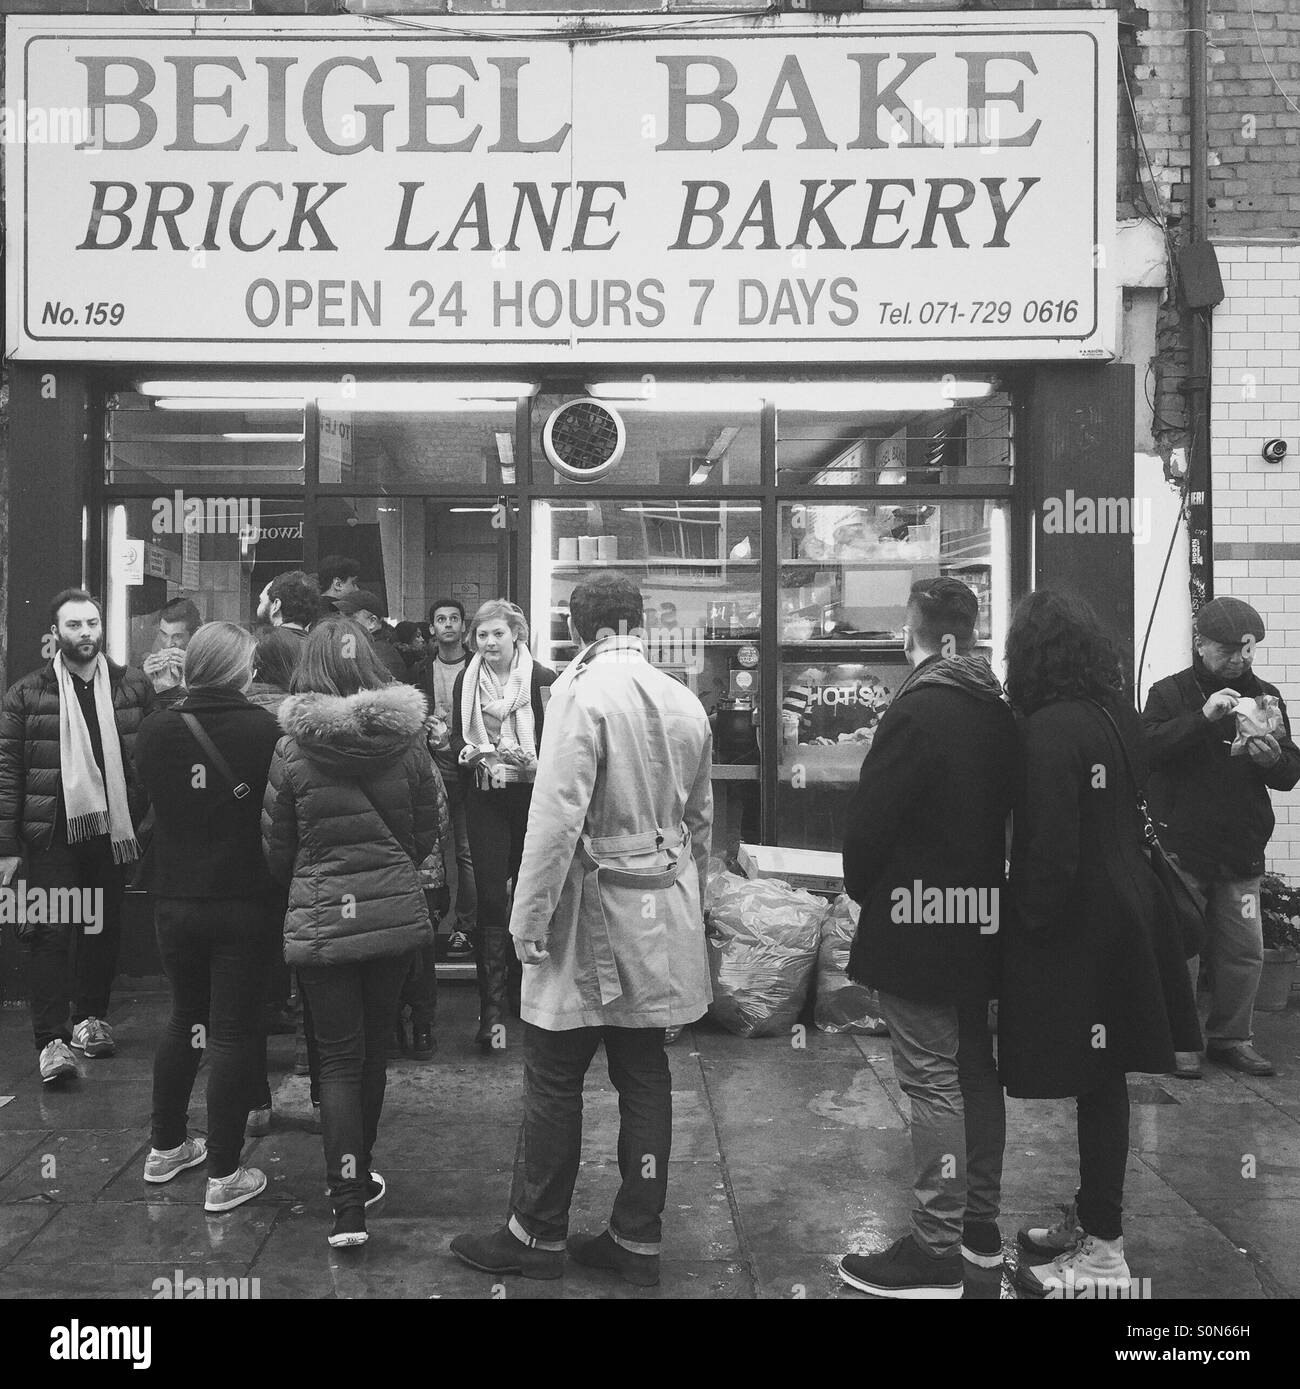 People queueing in front Beigel Bake shop, London, UK Stock Photo